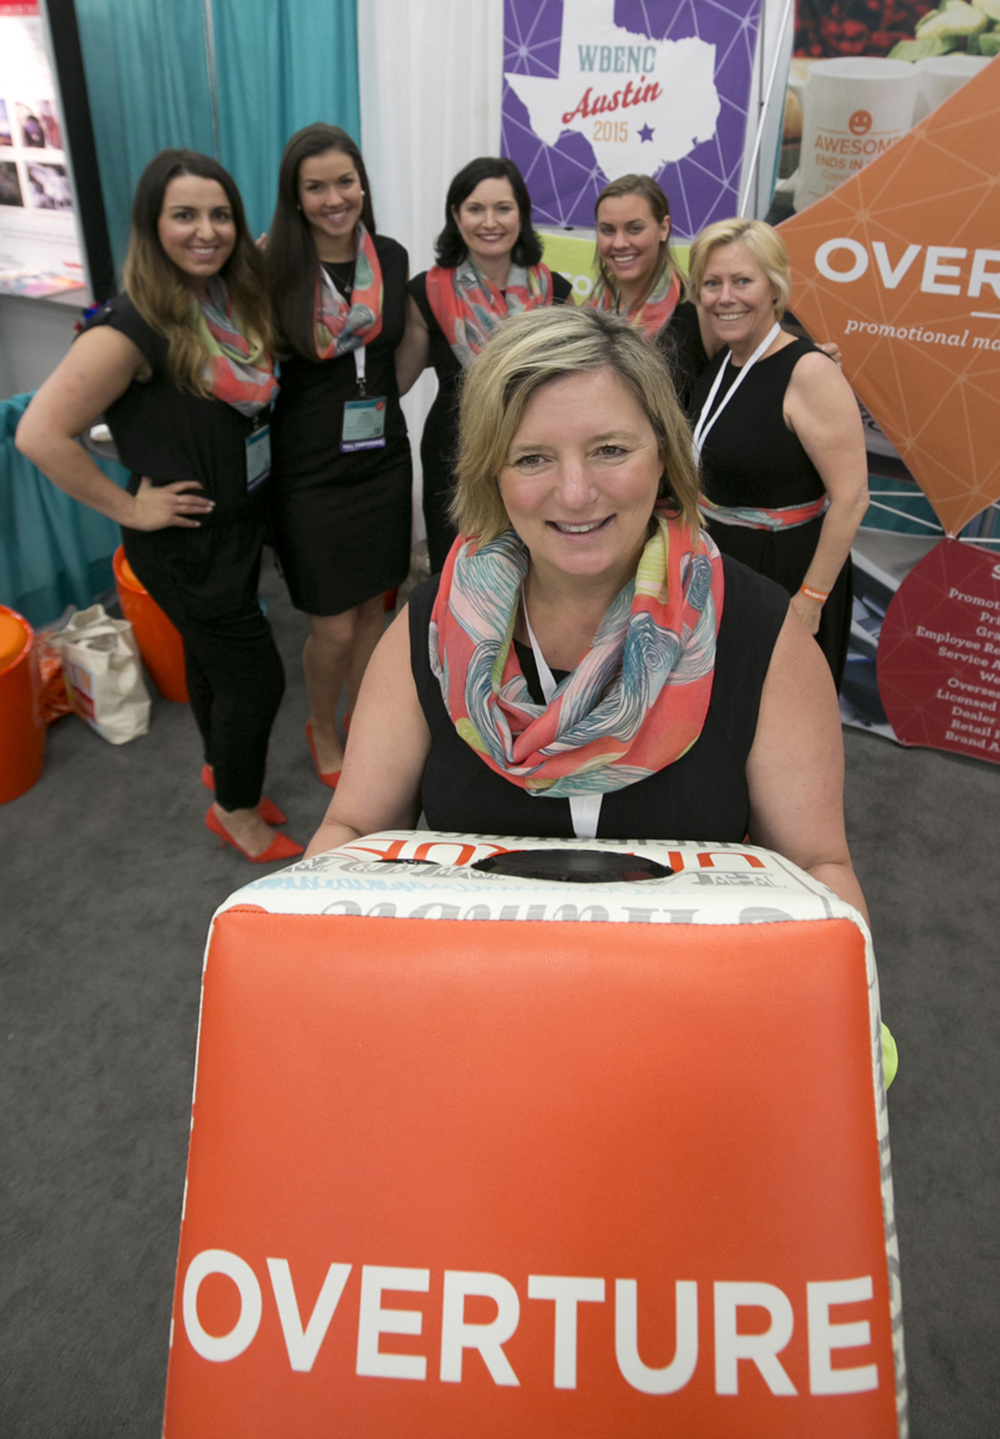 Heather Sanderson, the Founder and CEO of Overature Promotions with her team